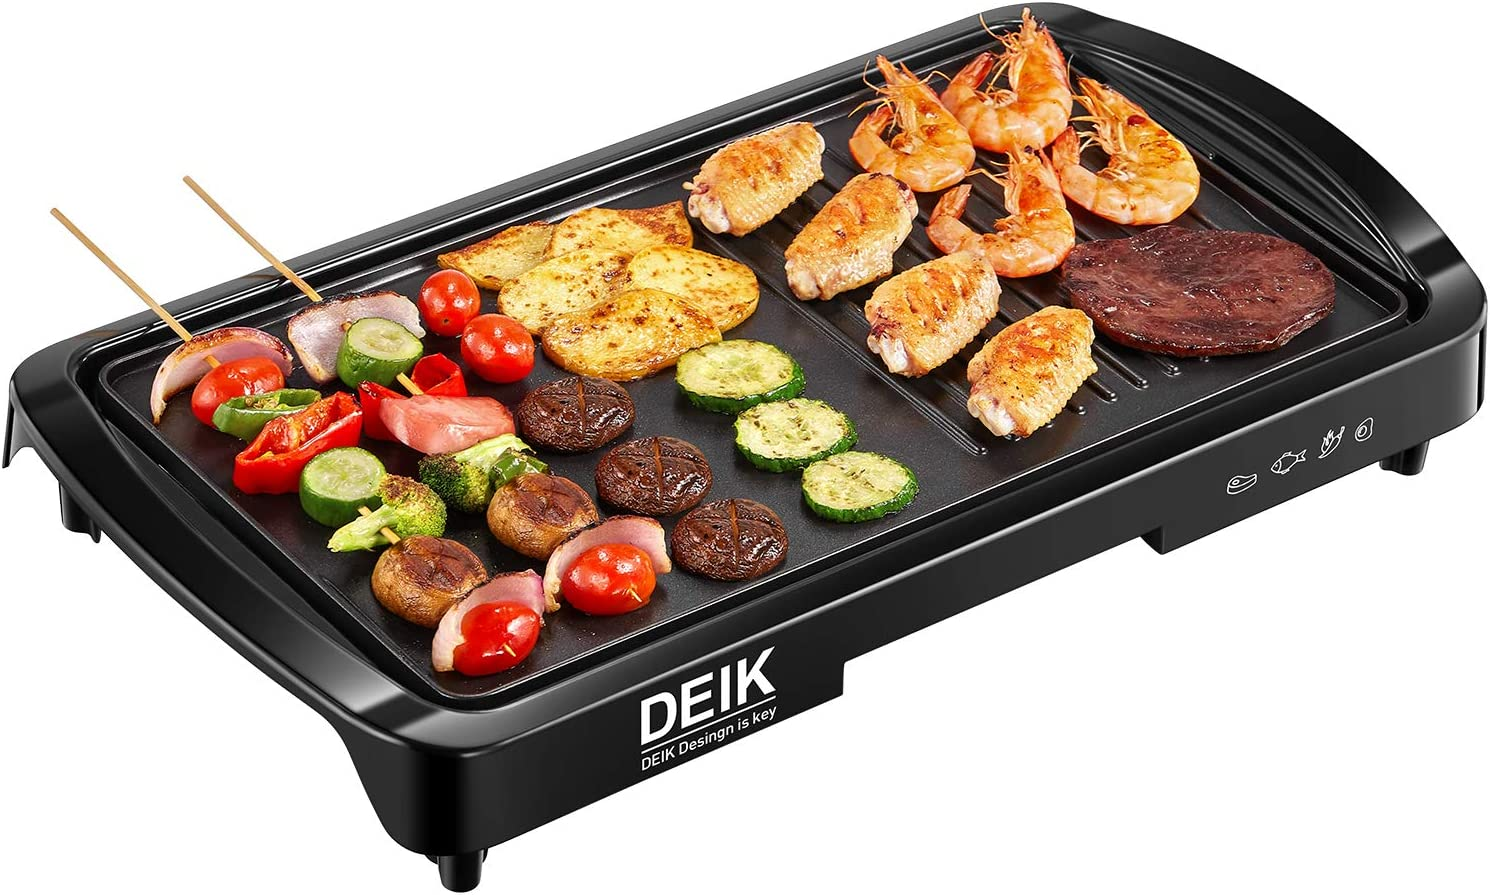 Electric Griddle, DEIK 2-in-1 Indoor Grill Smokeless Coated Non-Stick Pancake Griddle, 20''x10'' Extra Large Surface with 2 Oil Collection Channel, Cold-Touch Design, 5-Level Control, 1600W